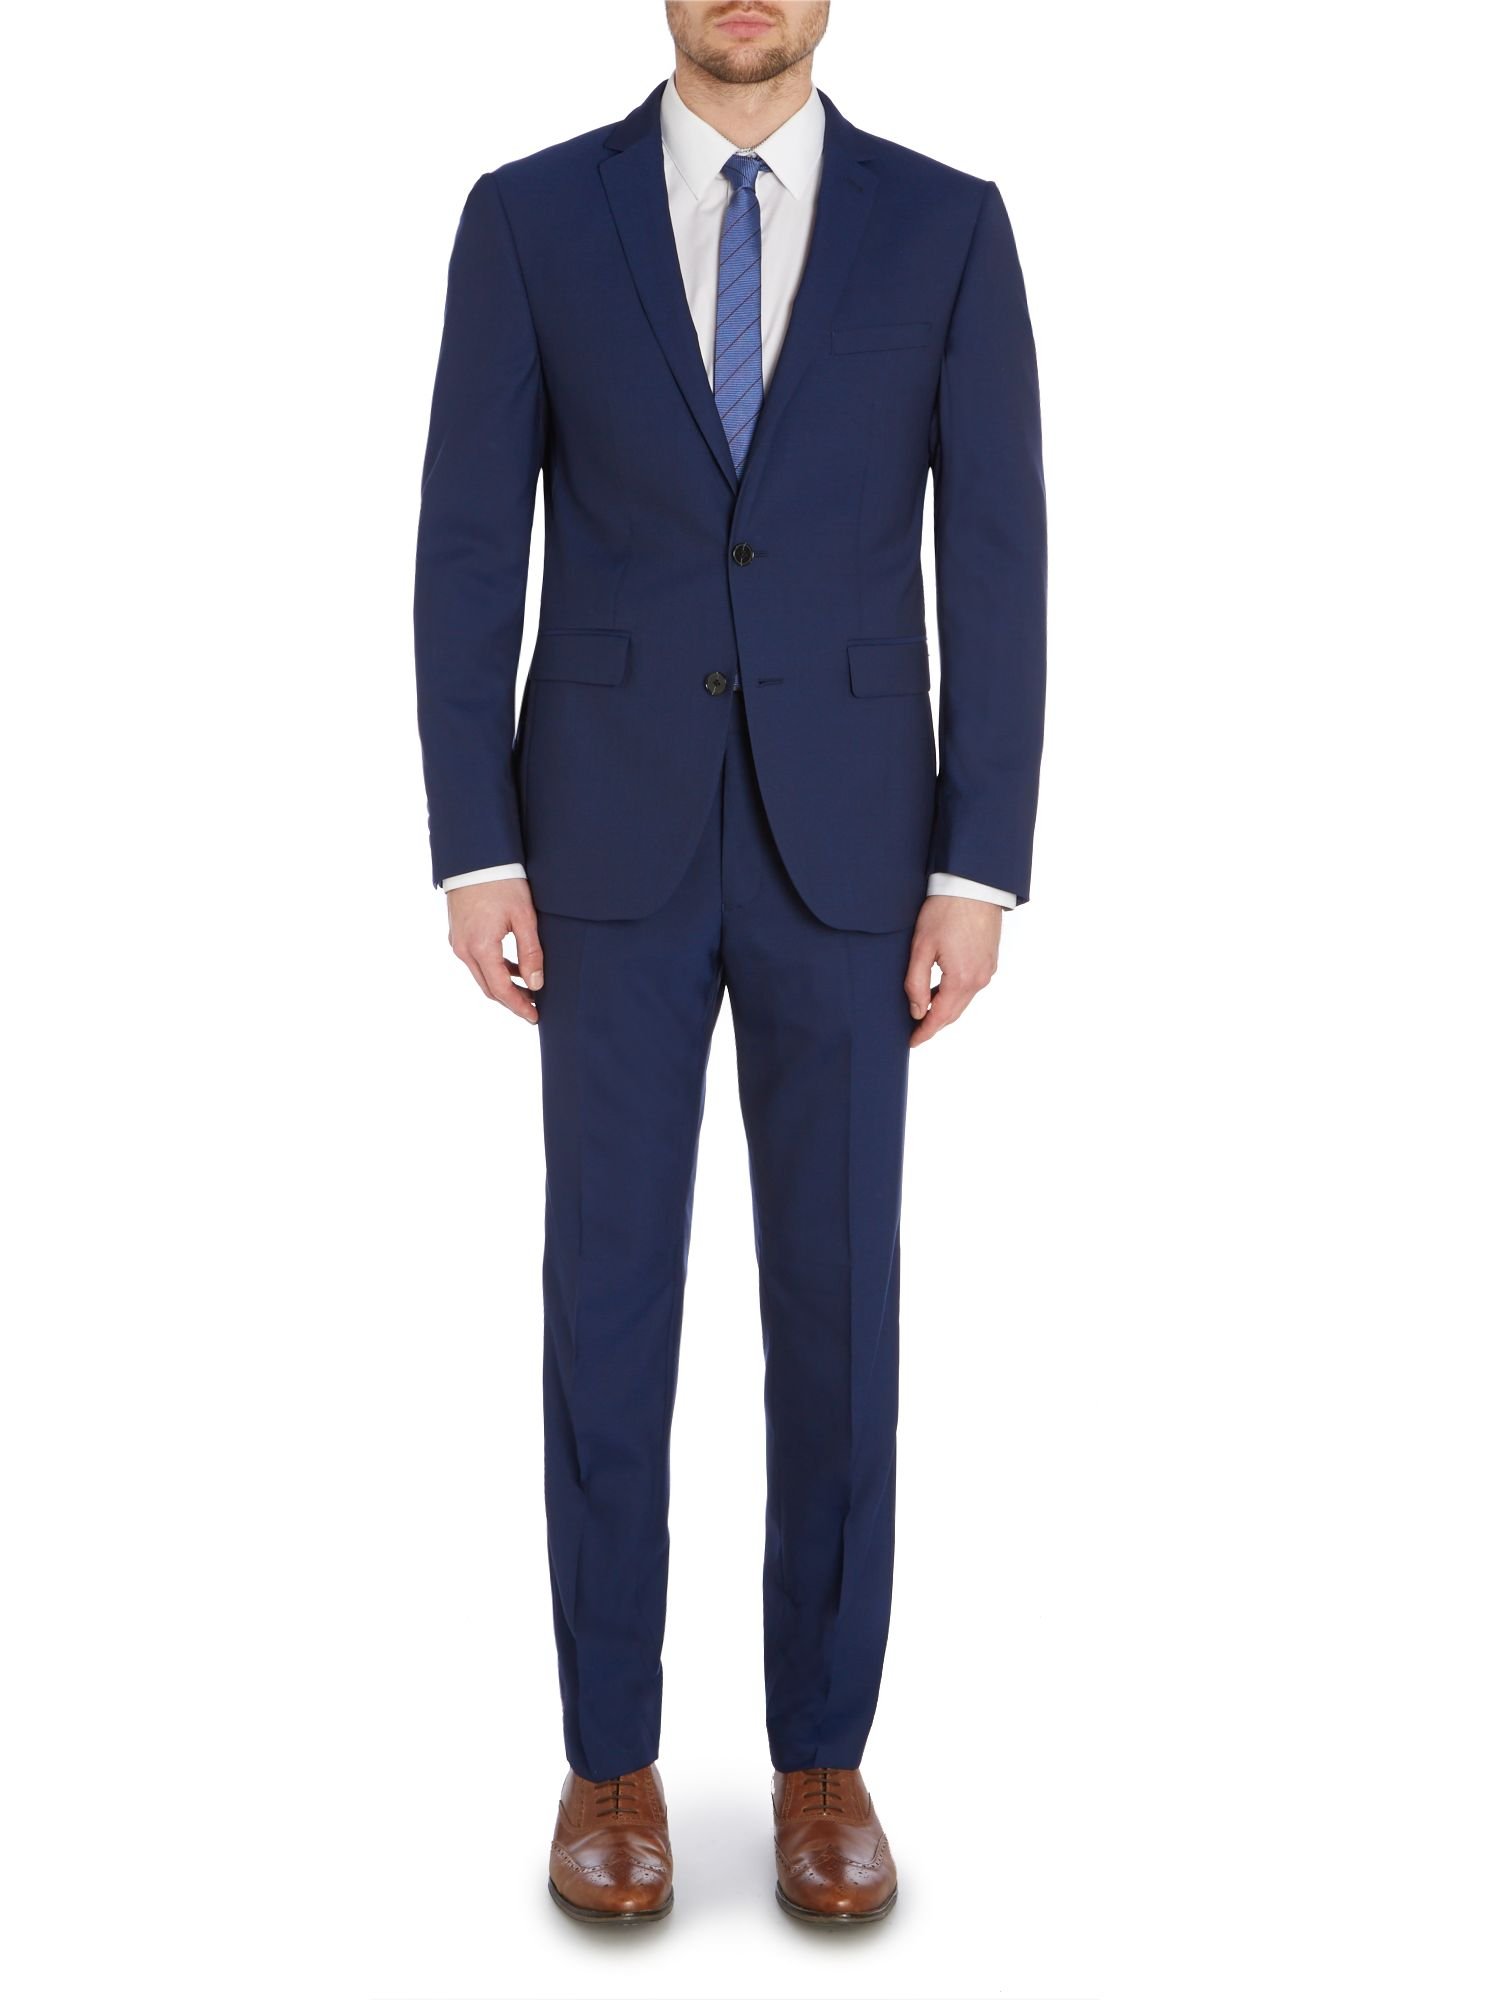 Getting The Suited and Booted Look: